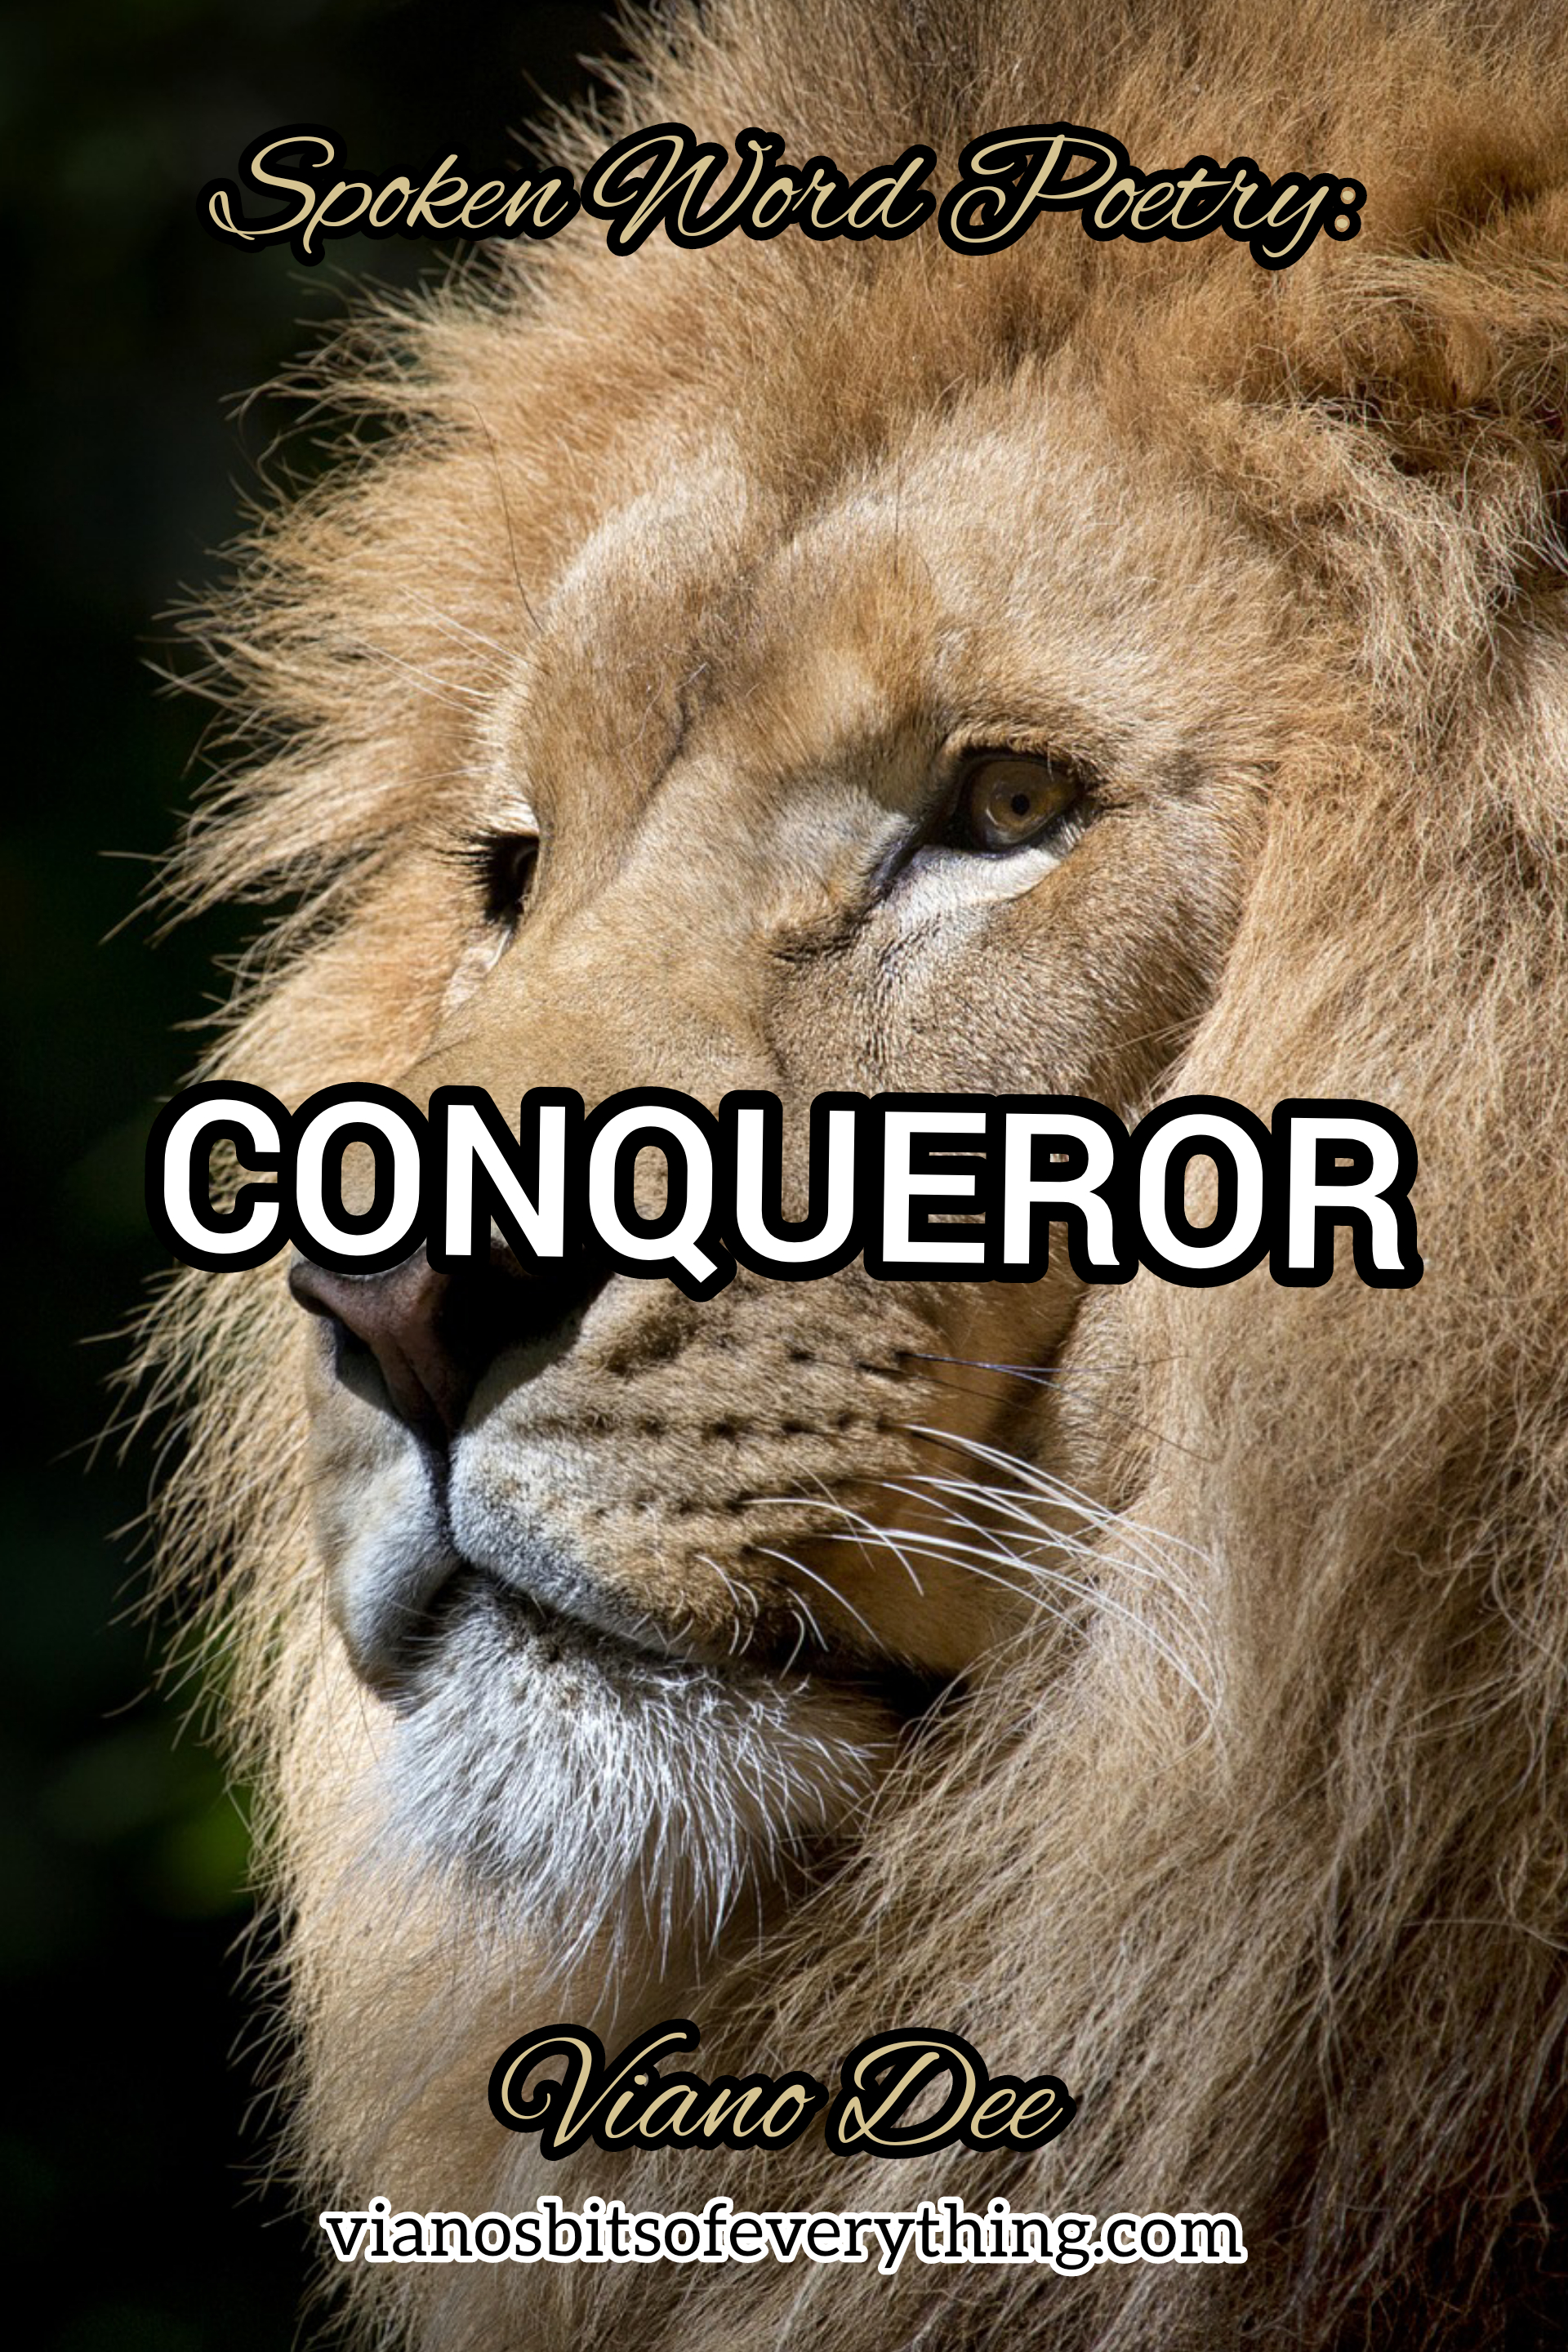 Conqueror: Spoken Word